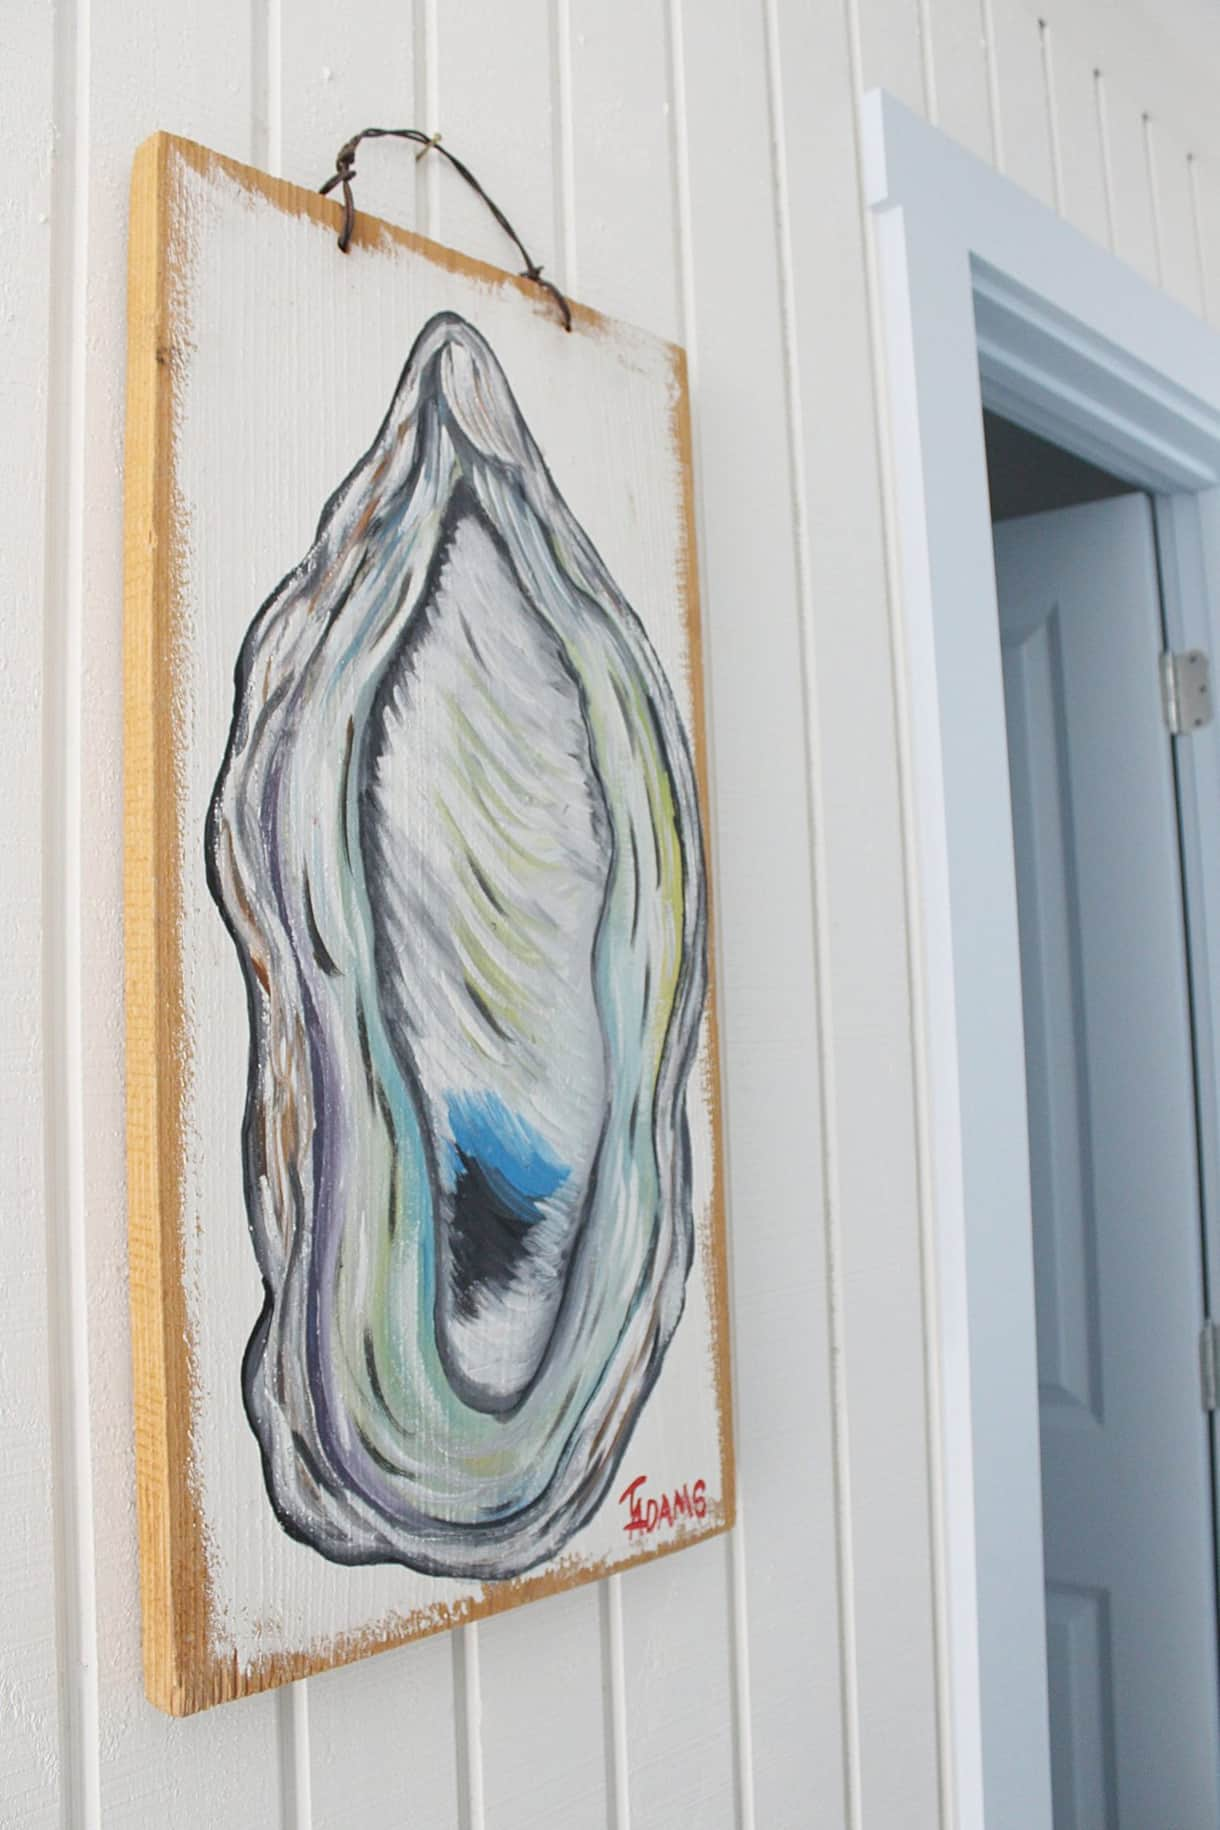 Oyster Painting (Locally sourced art)